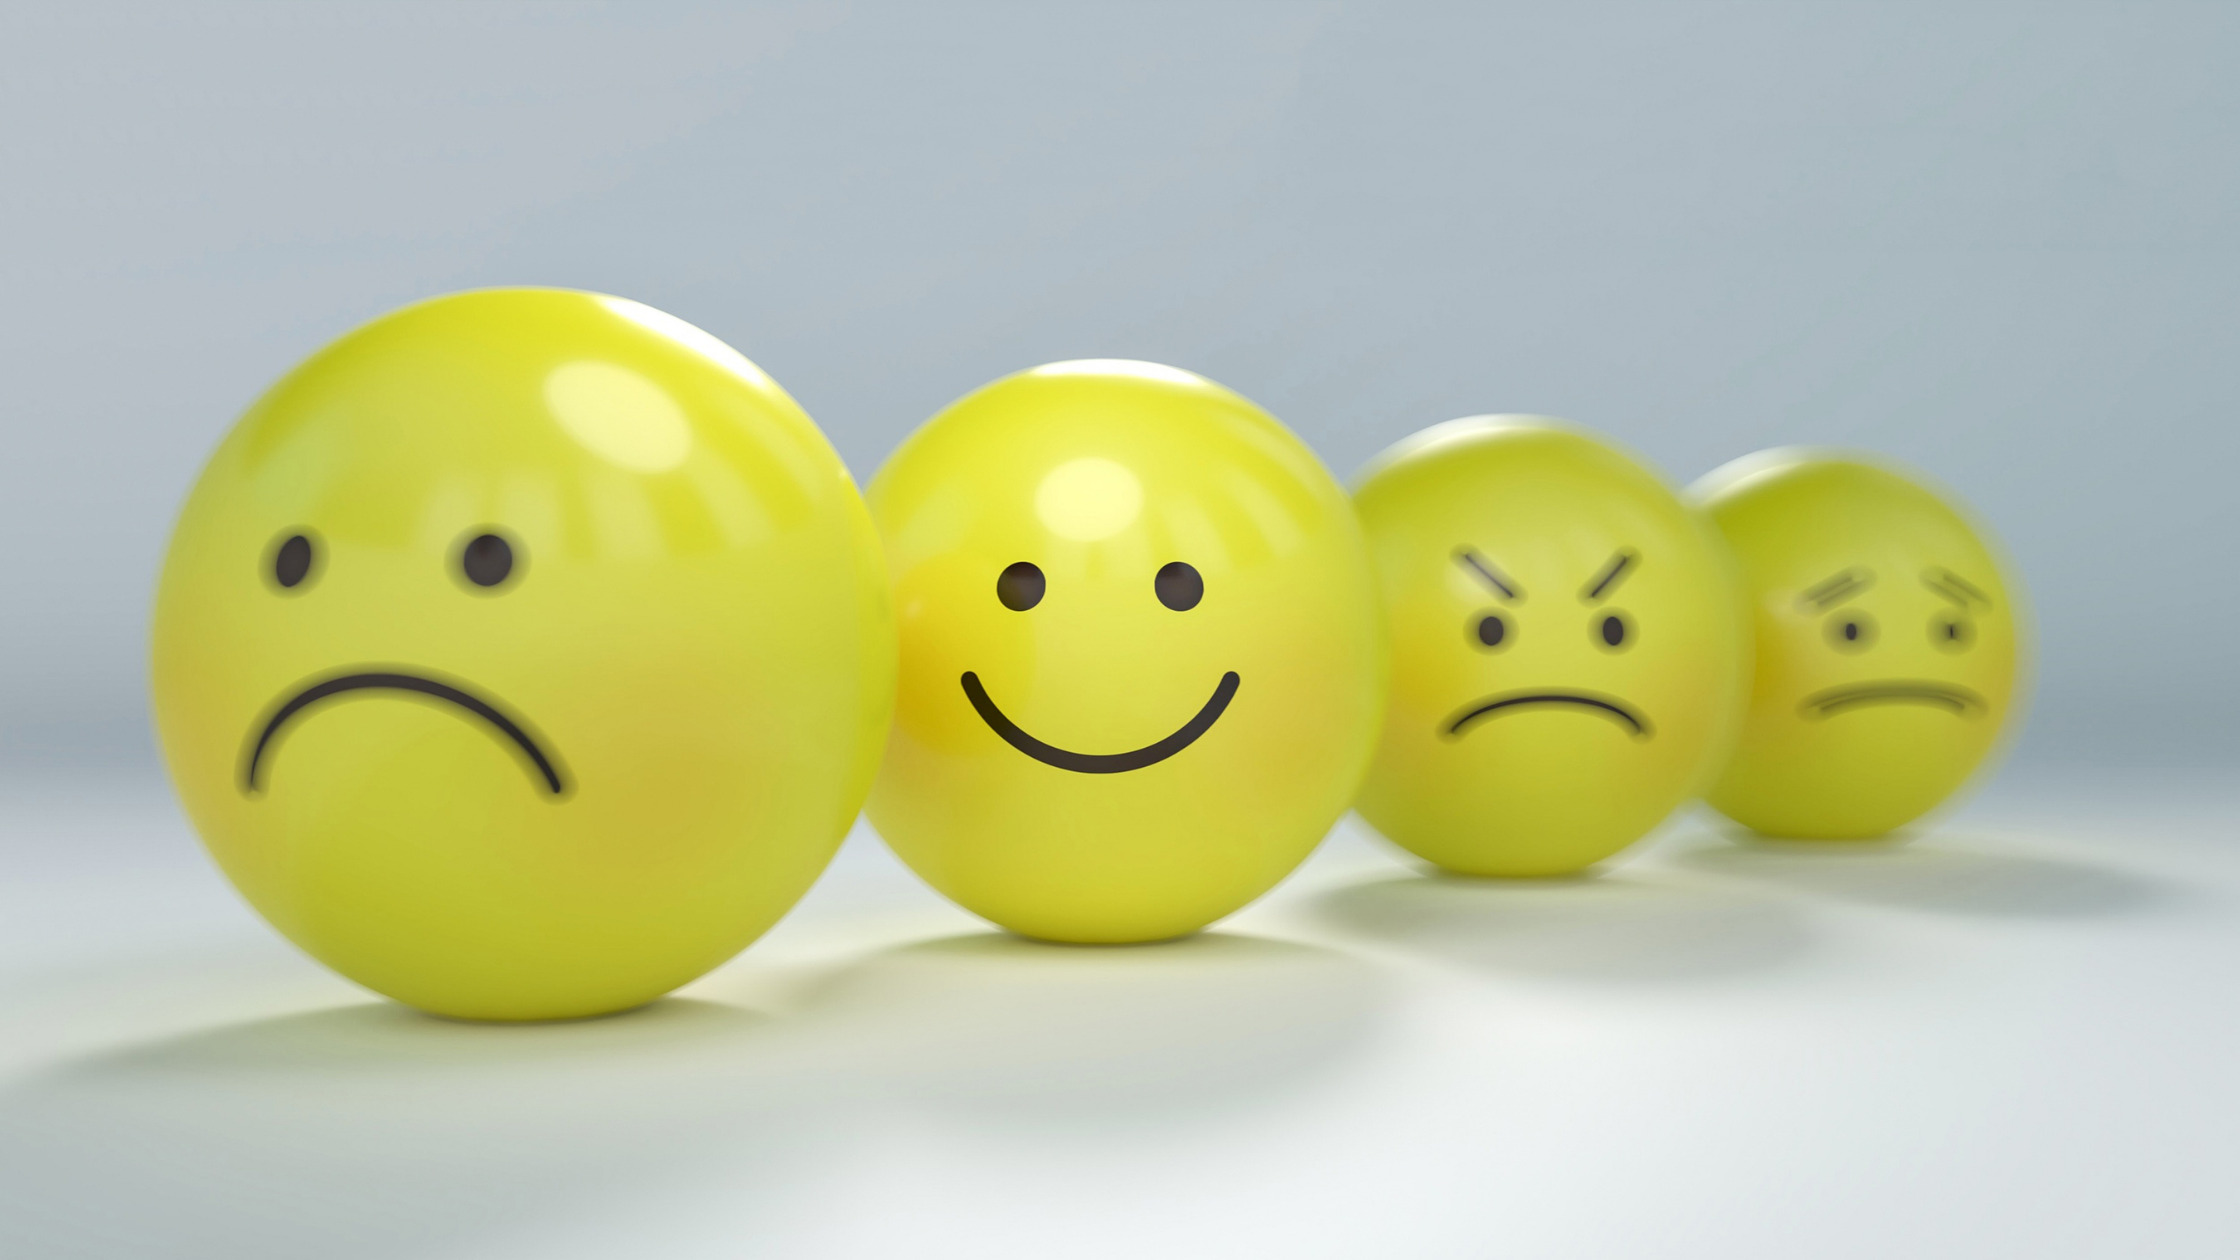 Anger Management In Greensboro, NC Helping People Live A Healthy Life, Manage Anger, and Develop Coping Skills For Calmness